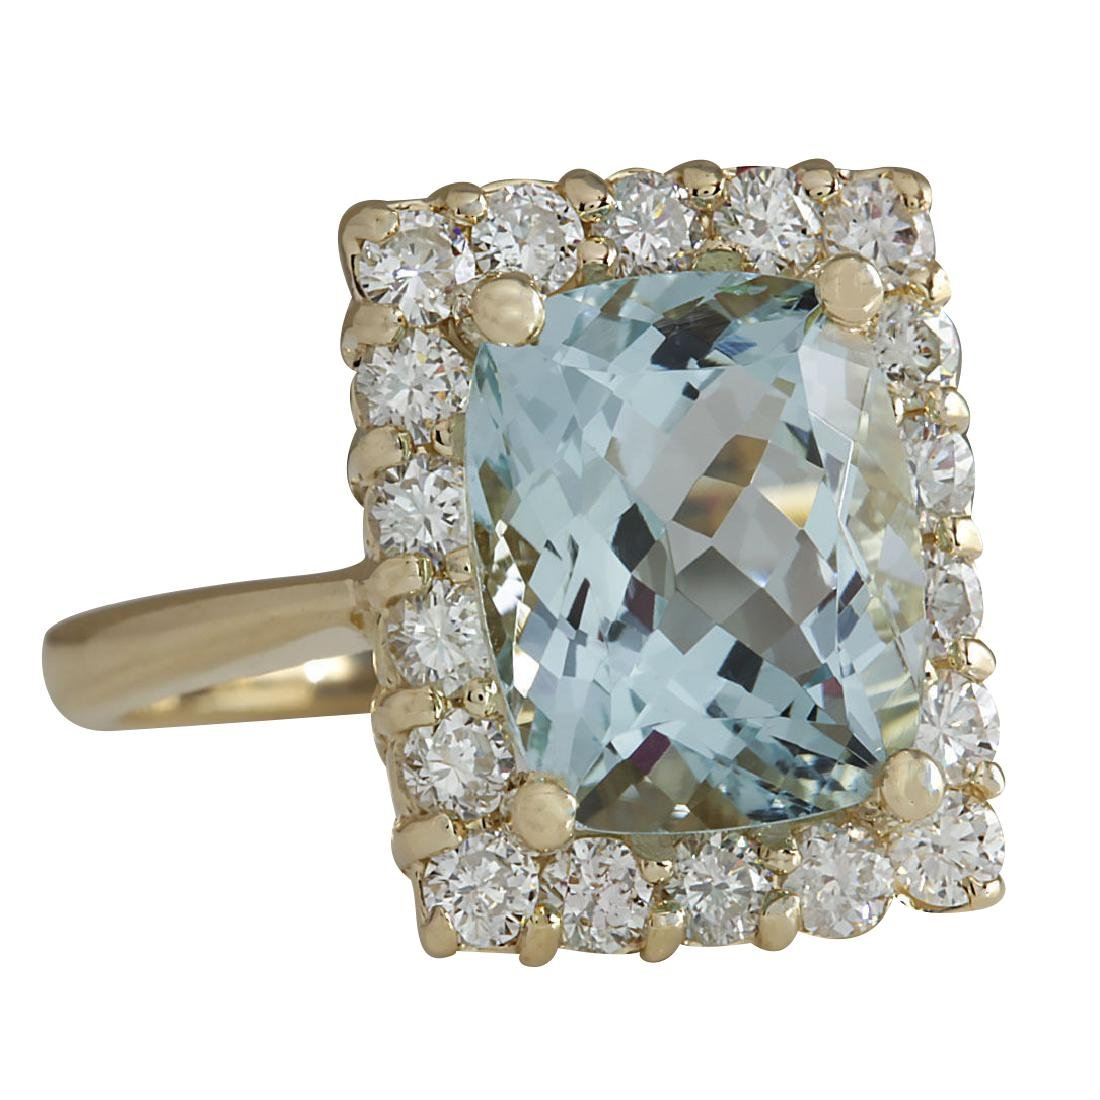 4.54CTW Natural Aquamarine And Diamond Ring In 18K - 2